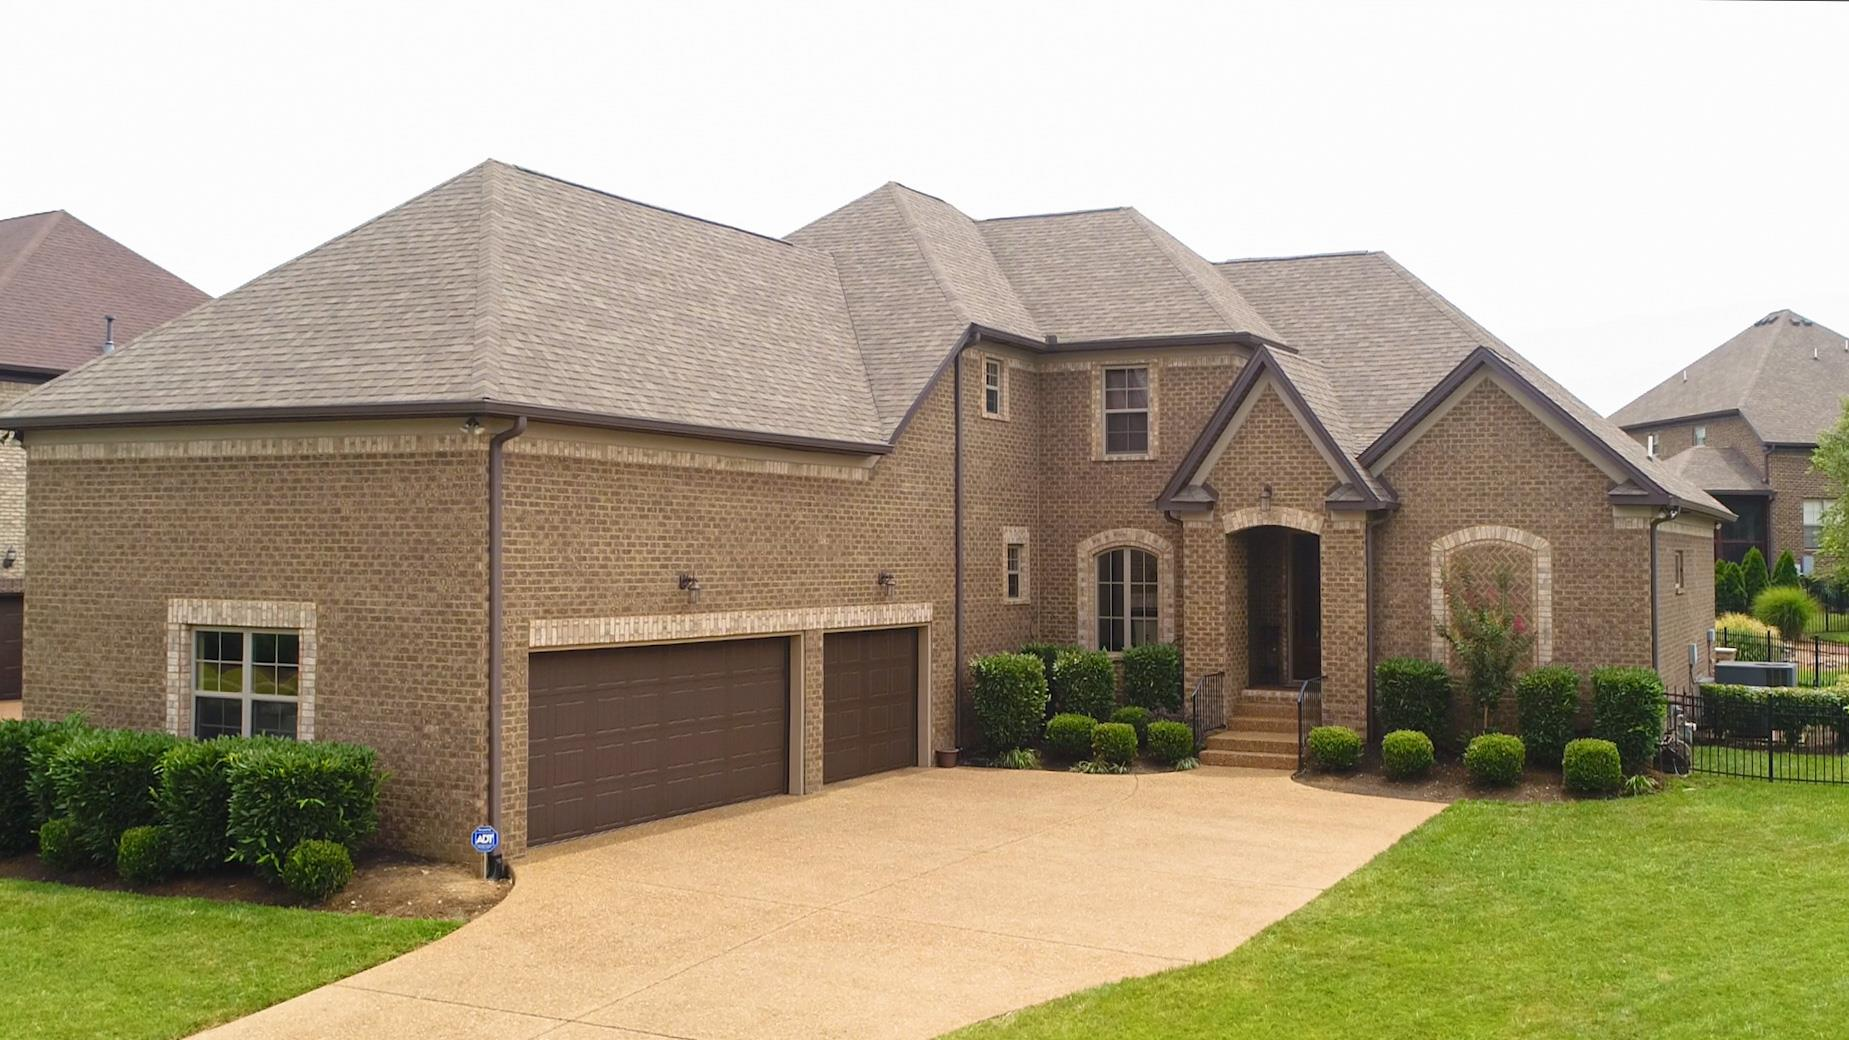 341 Crooked Creek Ln, Hendersonville in Sumner County County, TN 37075 Home for Sale